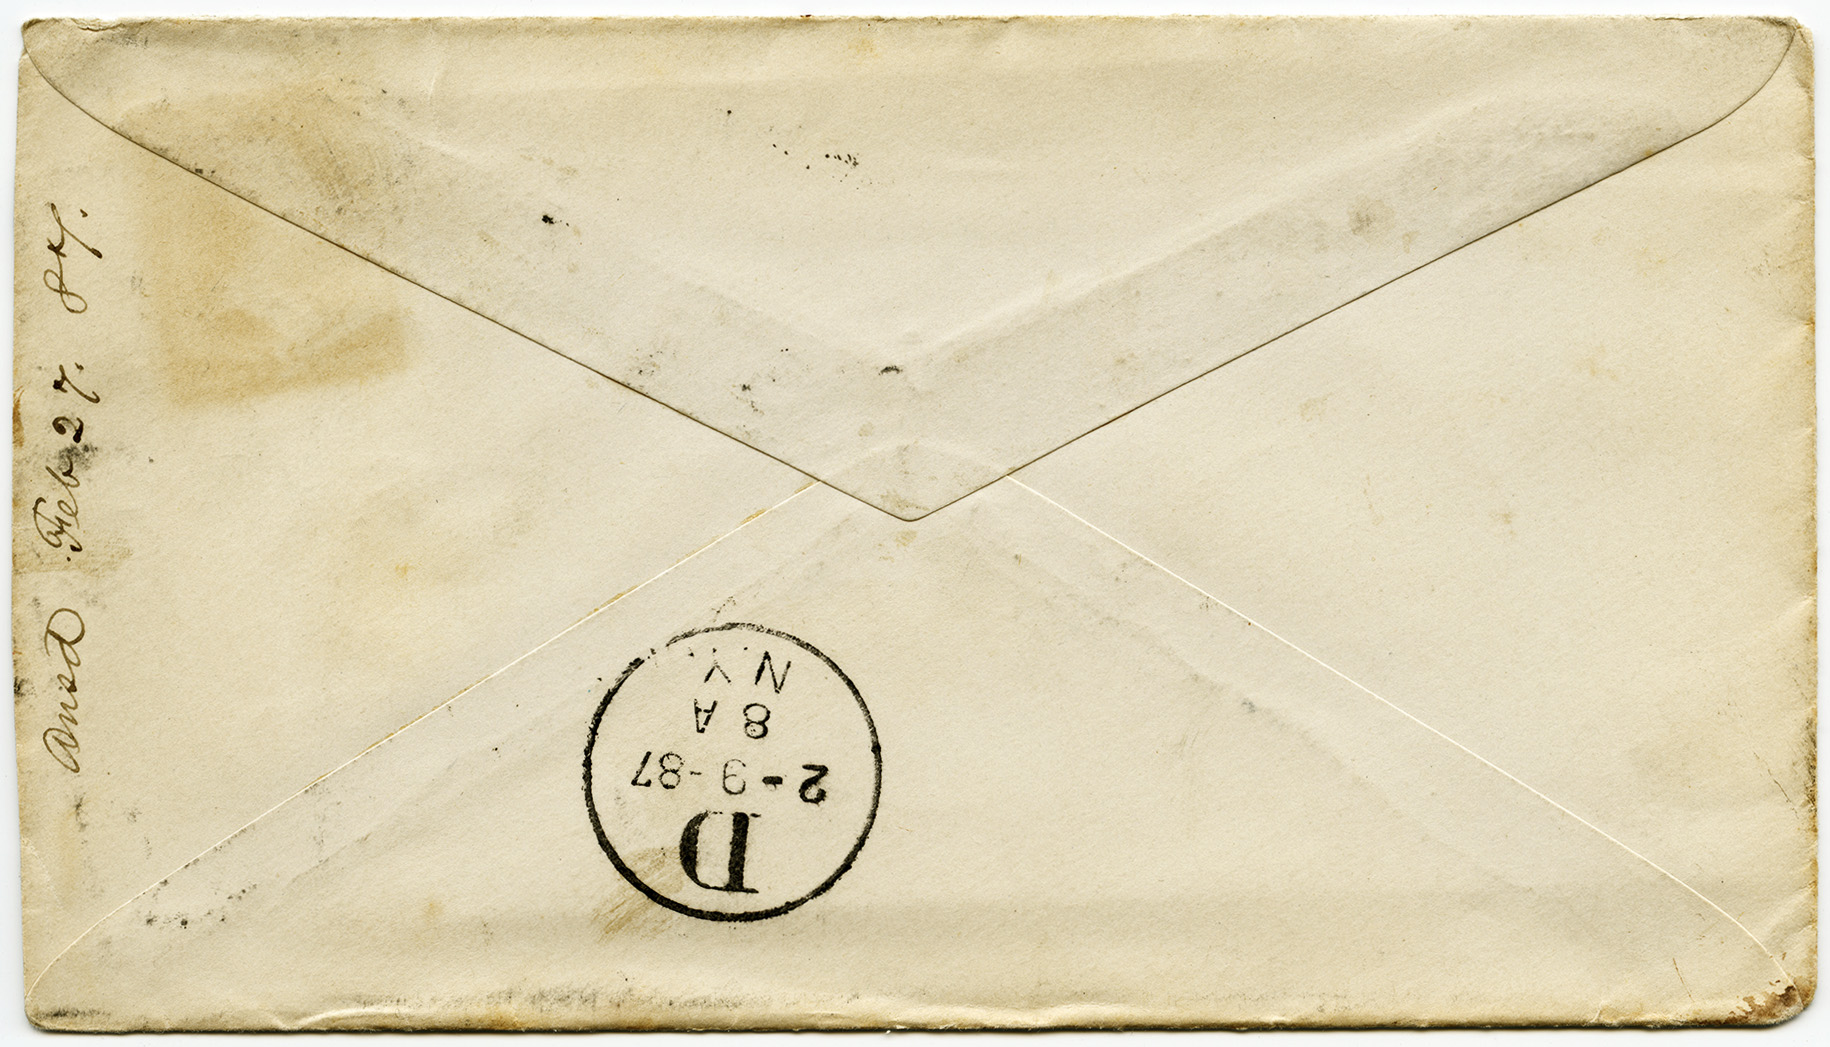 Old Fashioned Envelope Template